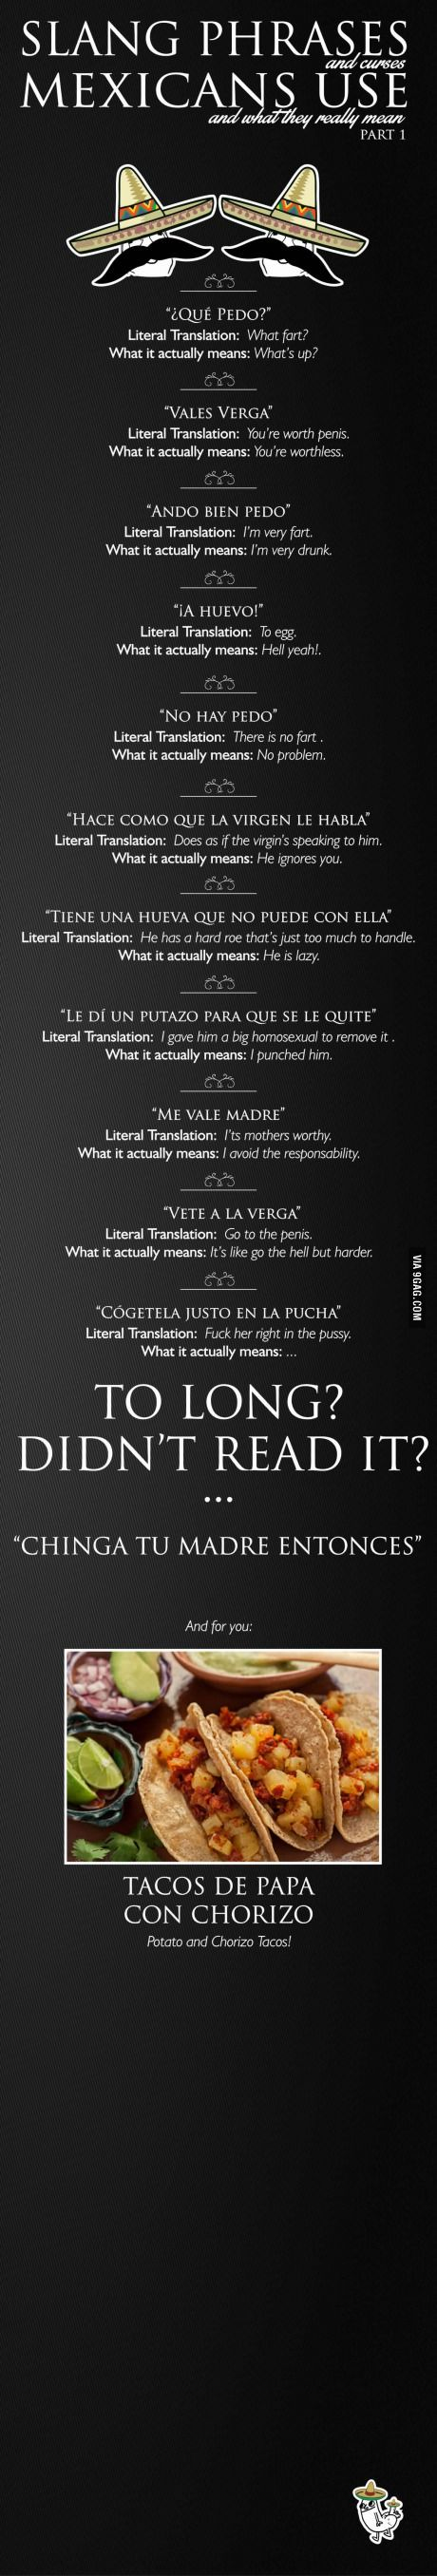 Sh*t Mexicans say, I love being Mexican... made this for you my 9gag amigos around the world! Hope you like it